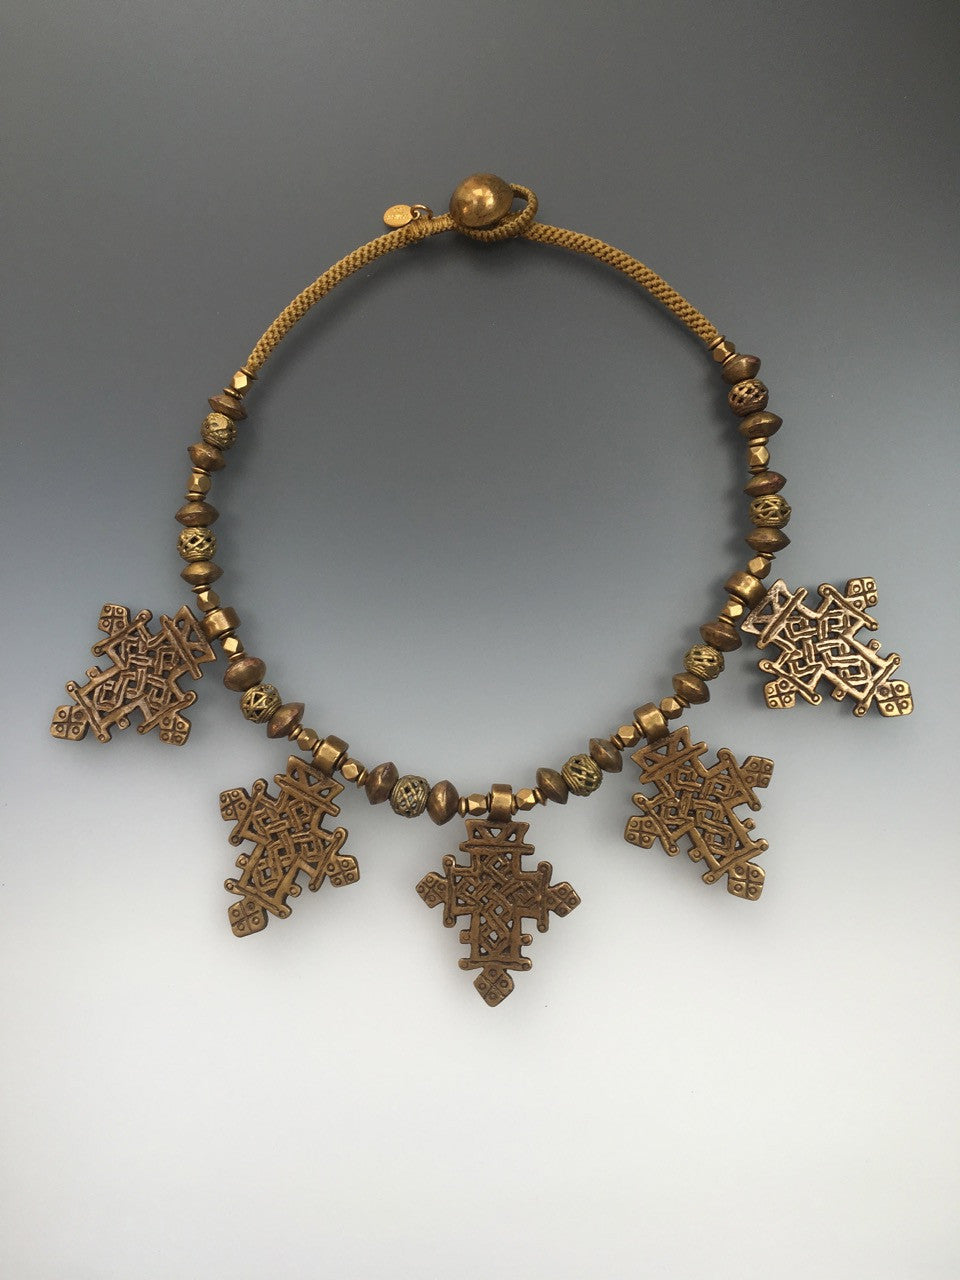 Vintage One-of-a-Kind Coptic Cross Necklace - Inspired Luxe